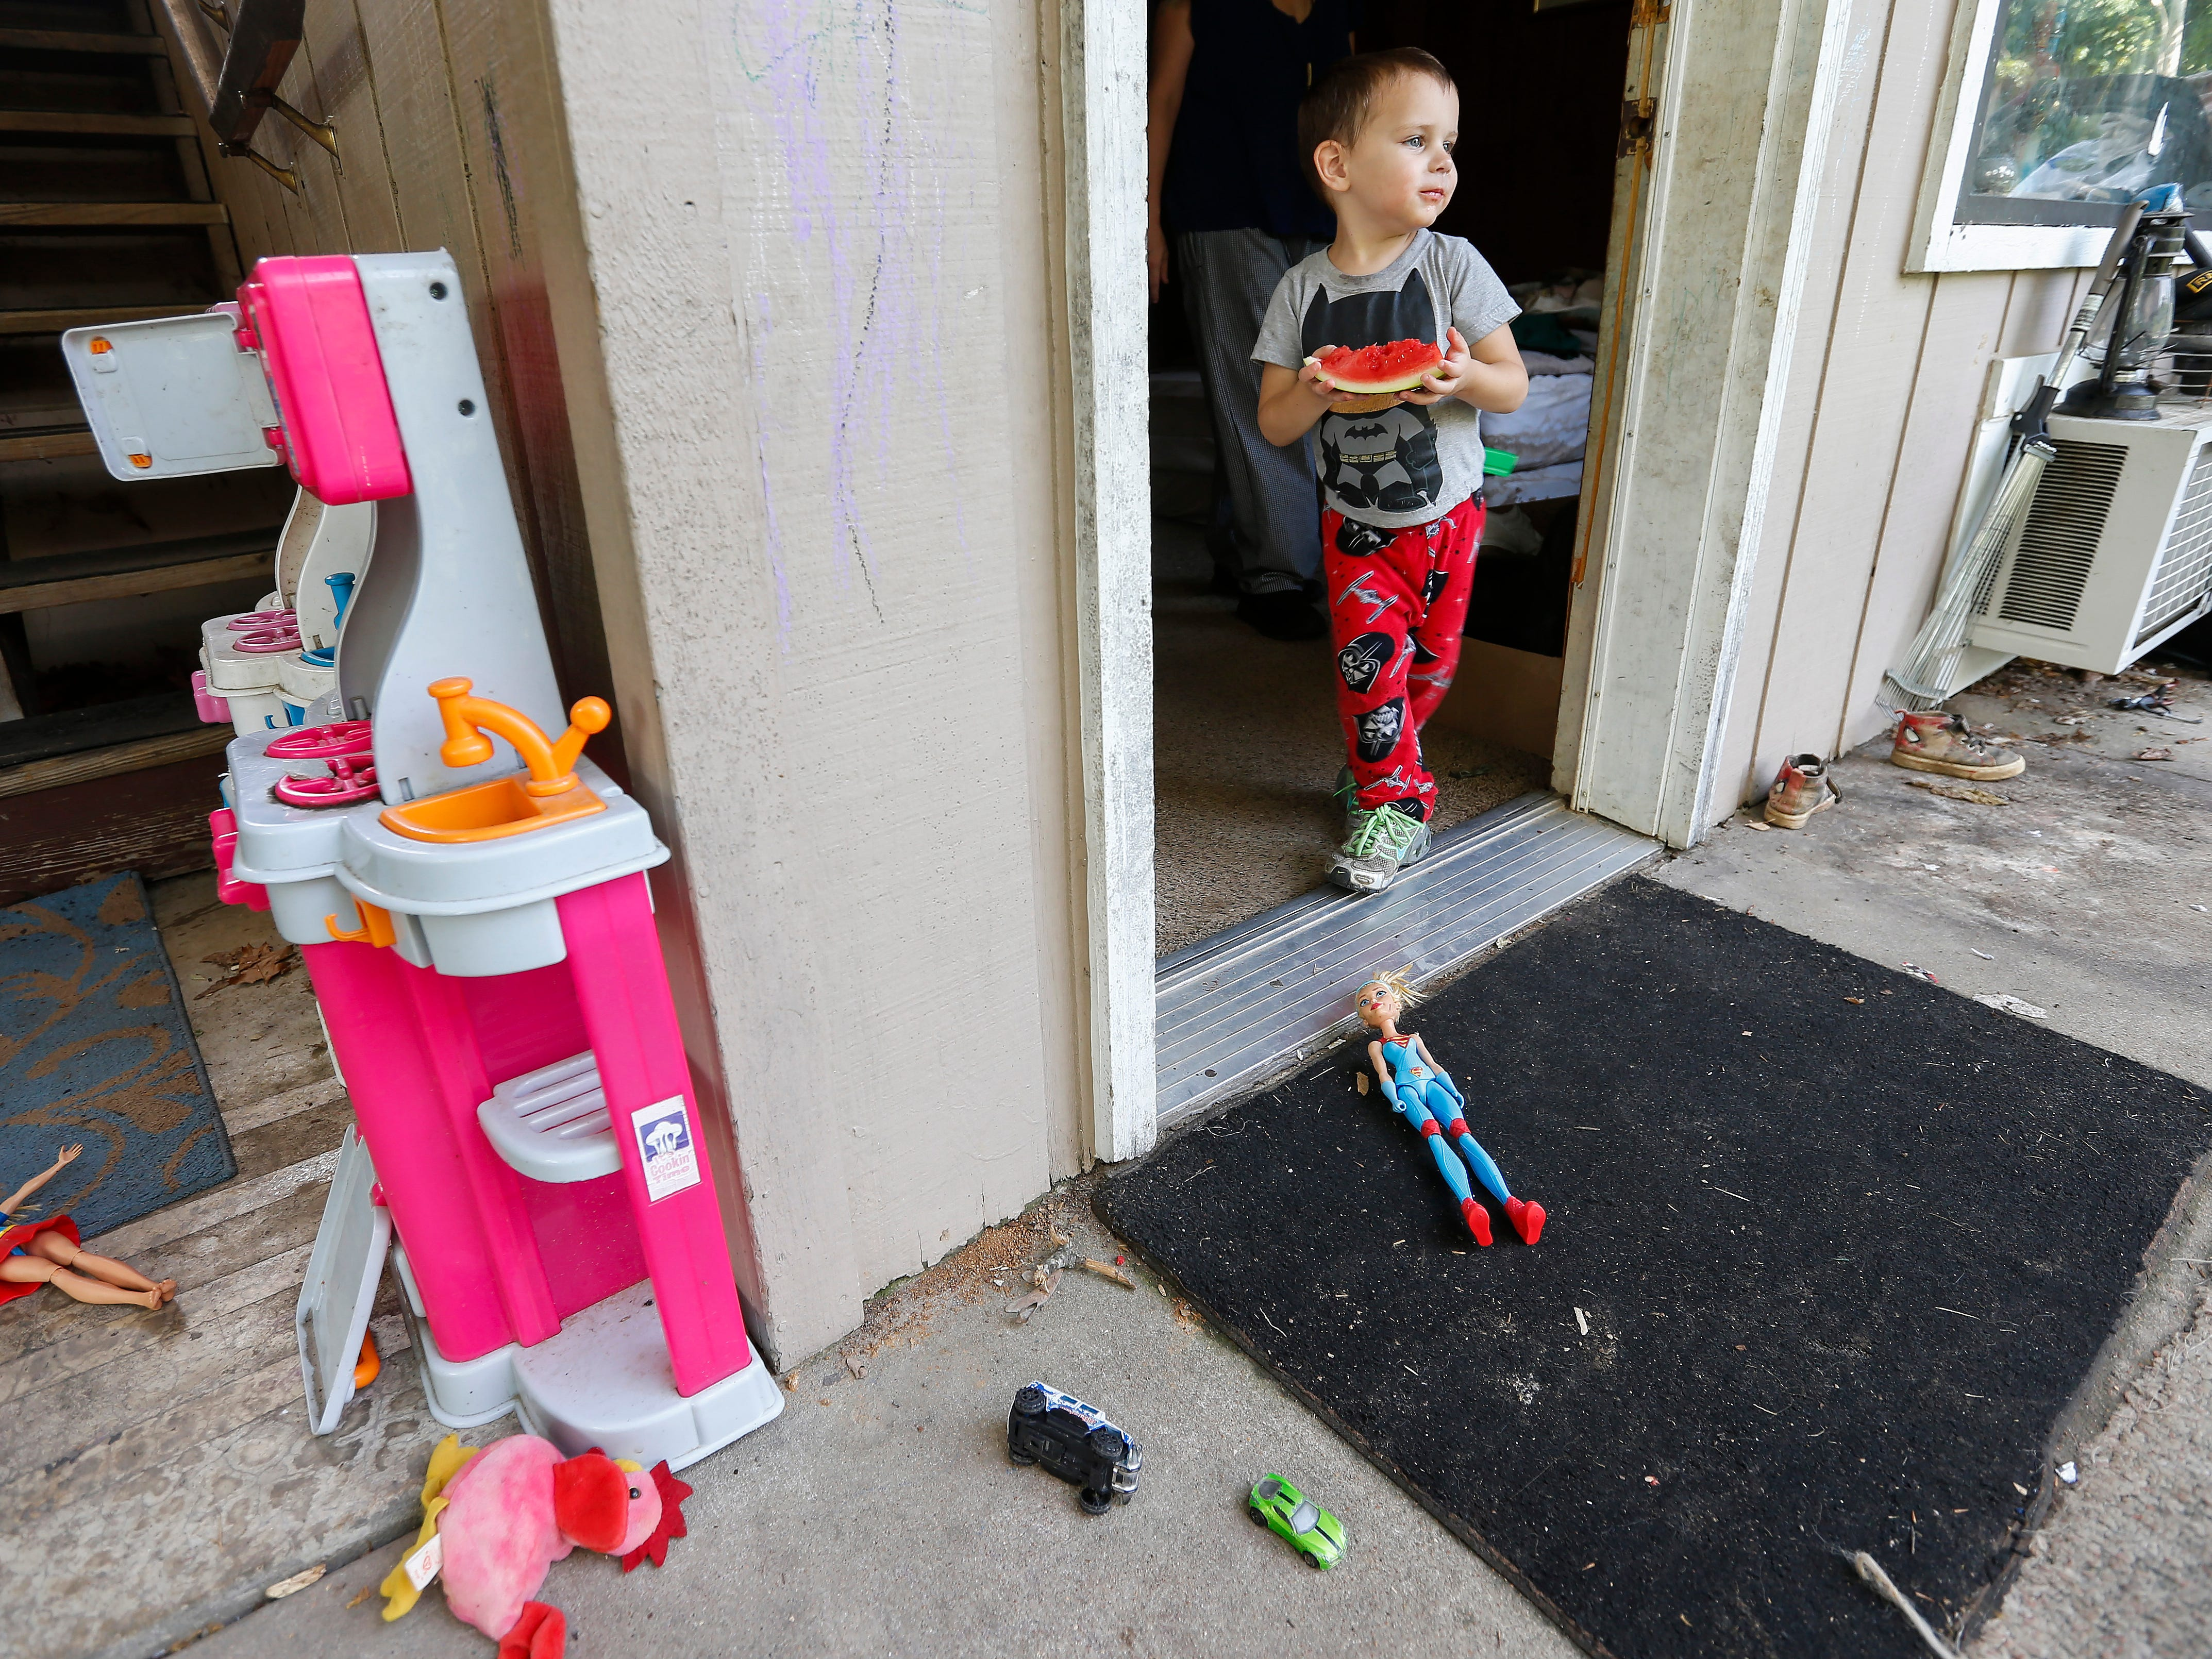 Gabriel Norris, 3, walks out of his family's room with a slice of watermelon at the extended stay hotel they live in in Branson on Wednesday, July 18, 2018. They spend most of their time outside their room in the outdoor seating area they created talking with friends and barbecuing.